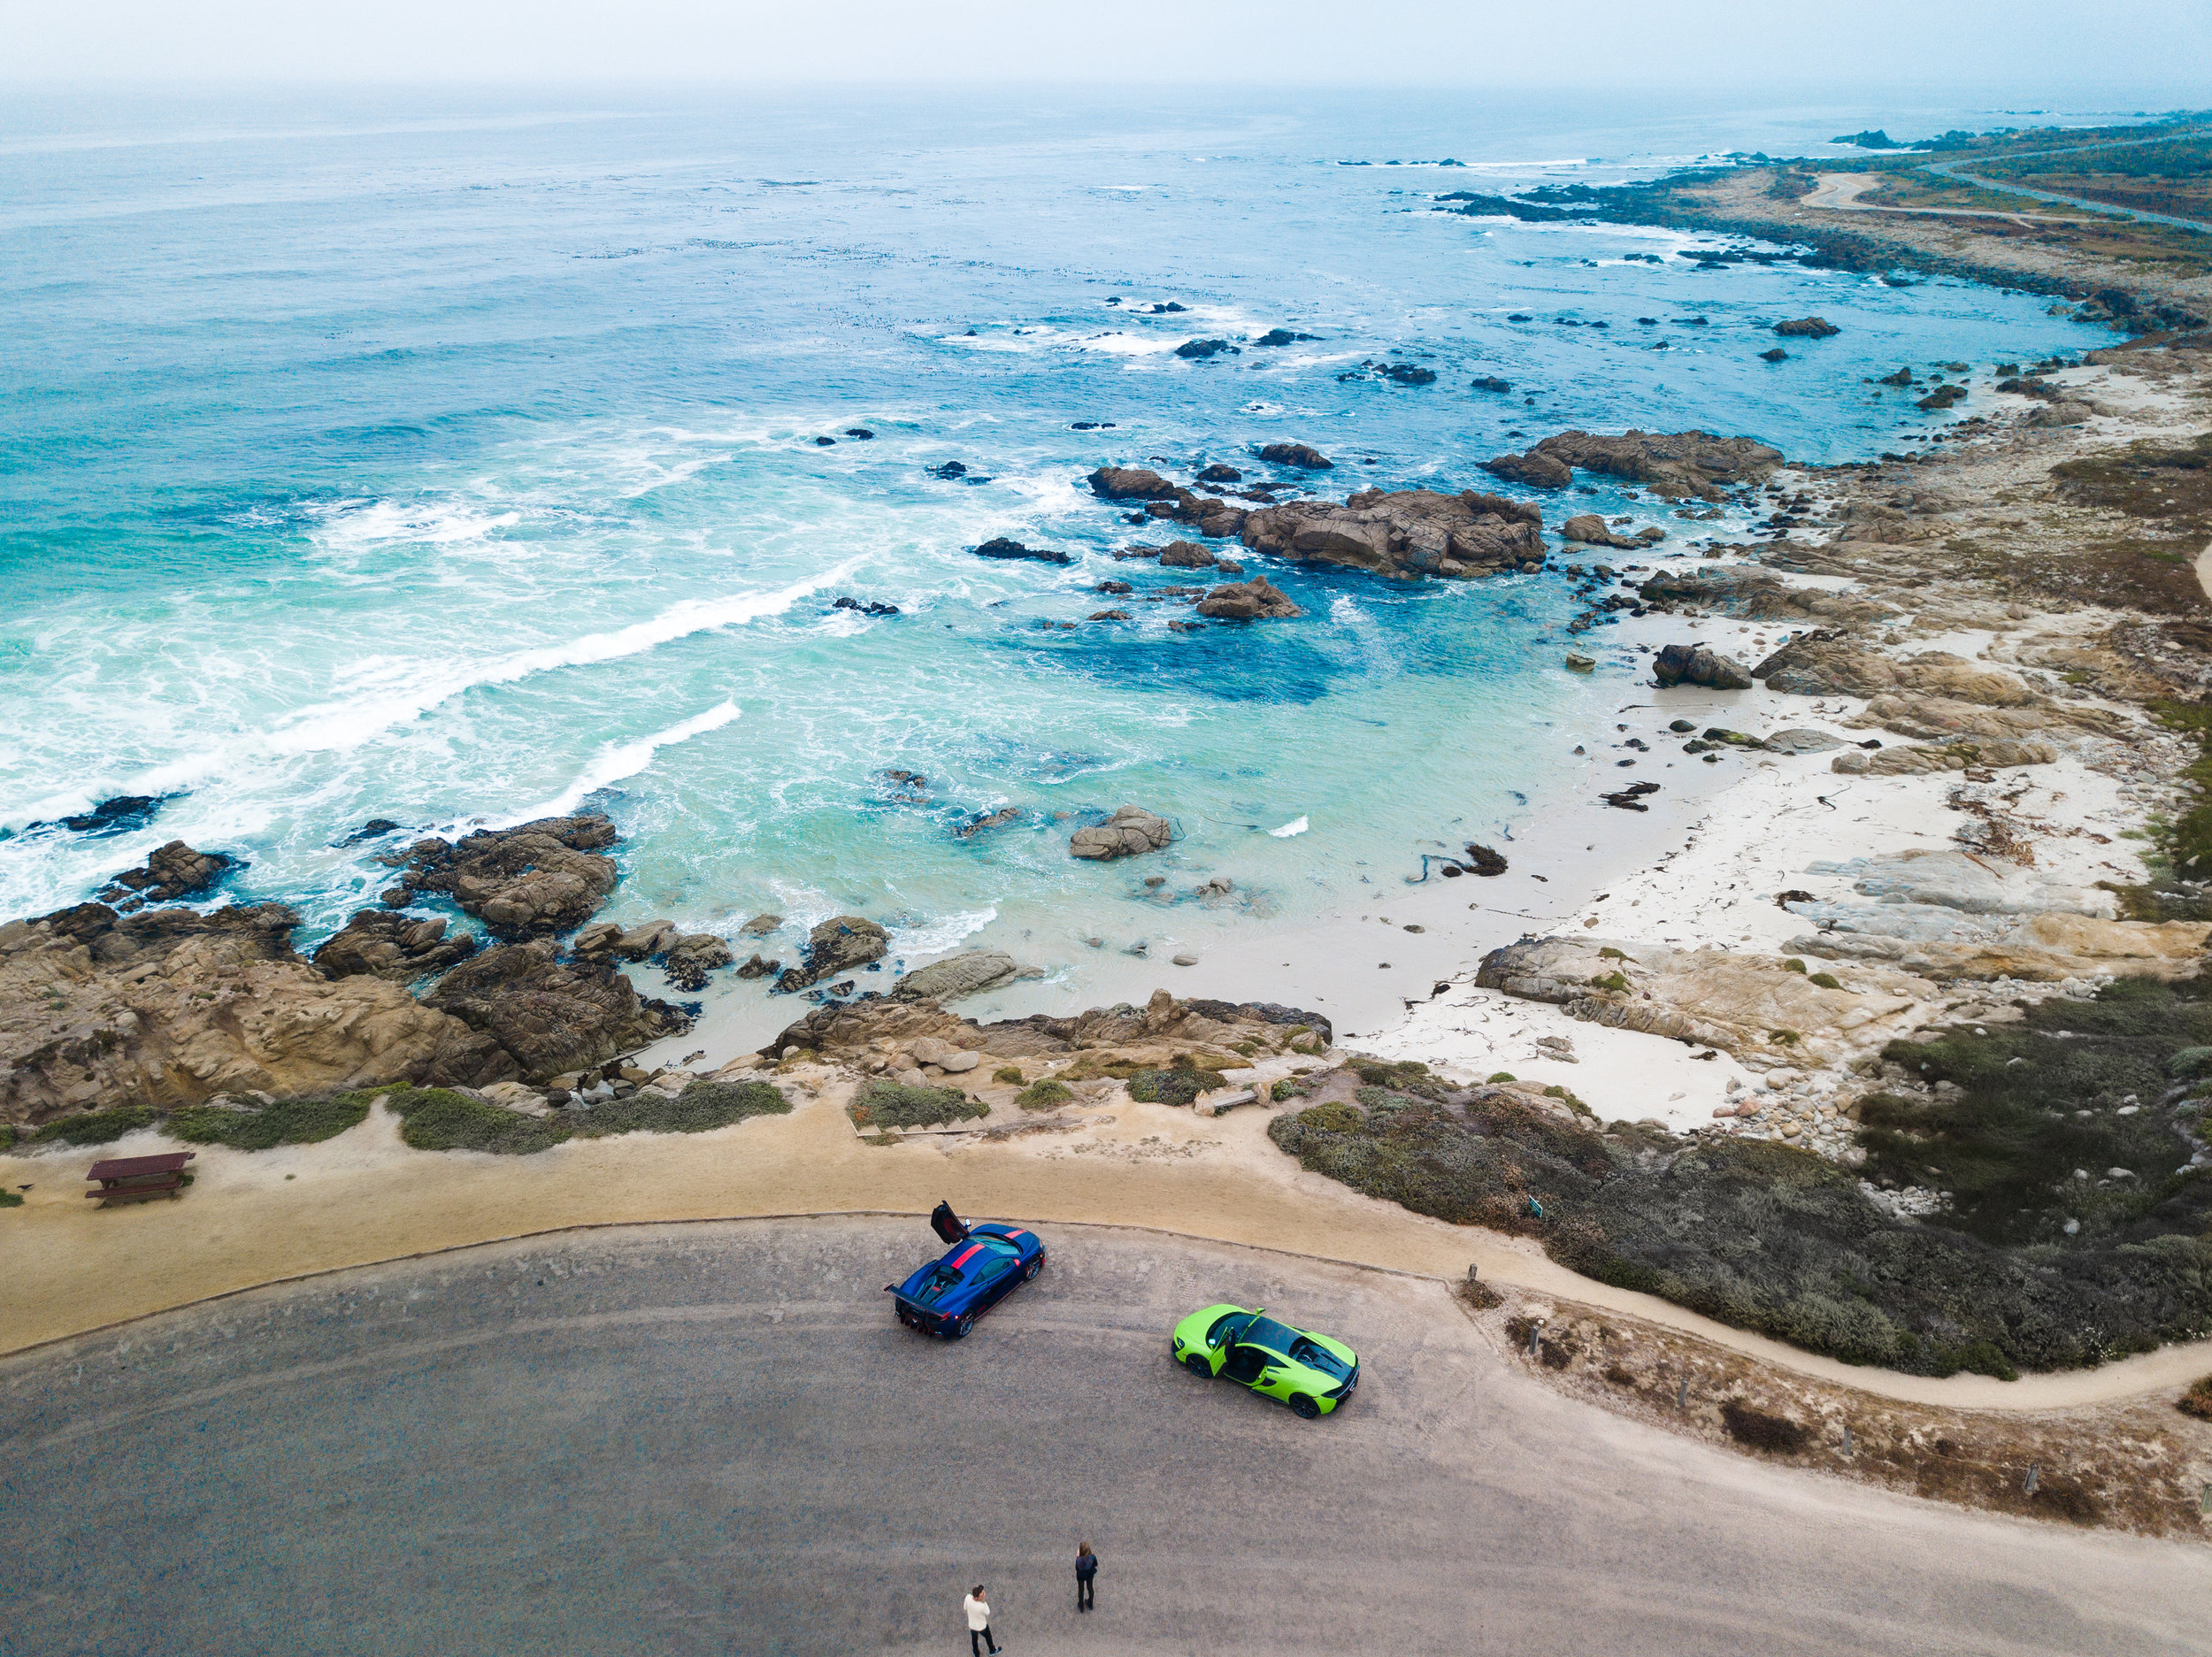 Stay_Driven_Monterey_Mclarens_DRONE-12.jpg